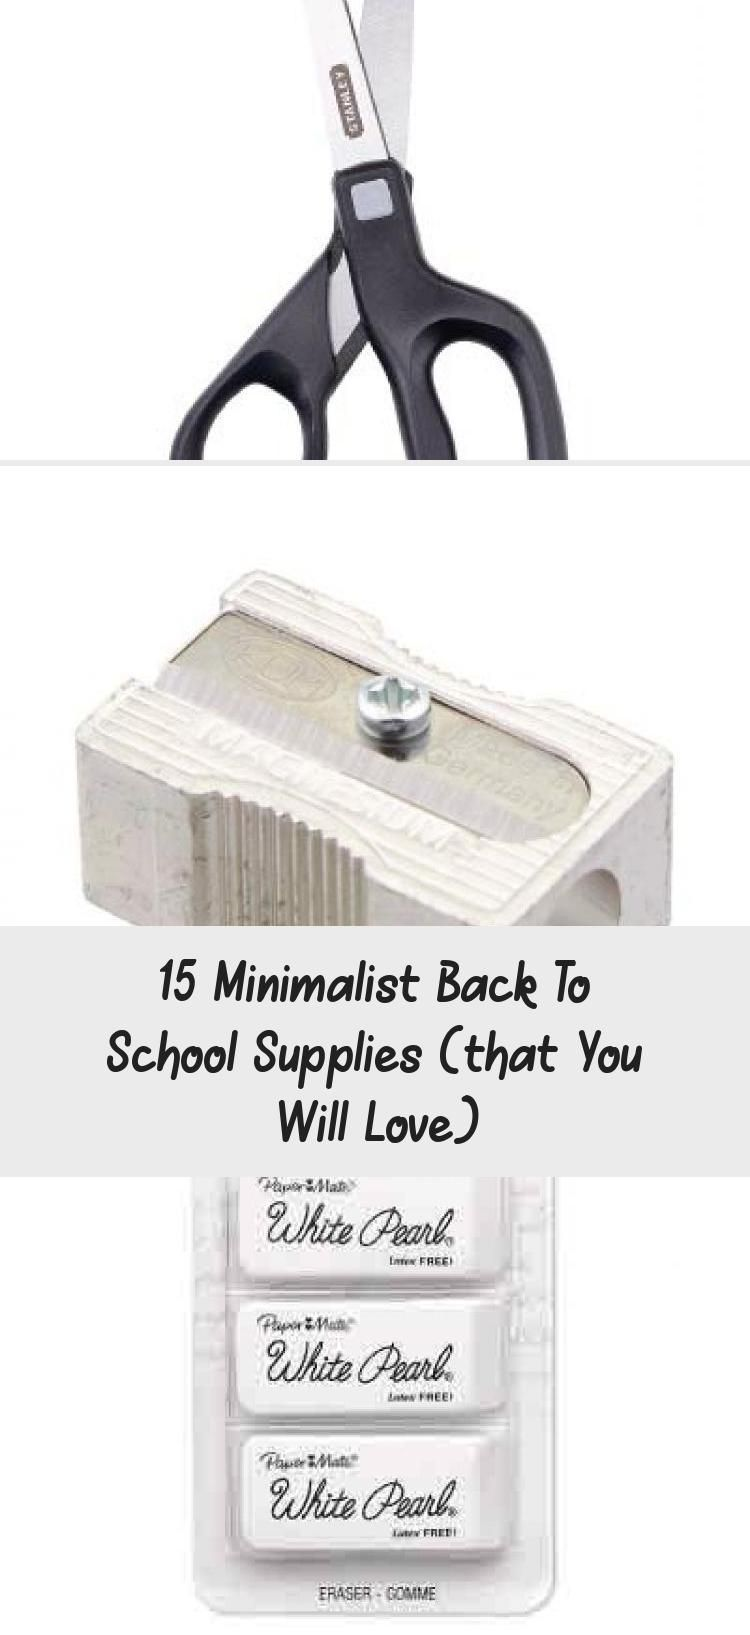 Minimalist School Supplies for College and High School. School essential packing list for girls and boys. #diyschoolsuppliesList #diyschoolsuppliesUnicorn #diyschoolsuppliesMinimalist #diyschoolsuppliesOrganization #diyschoolsuppliesTumblr #collegepackinglist Minimalist School Supplies for College and High School. School essential packing list for girls and boys. #diyschoolsuppliesList #diyschoolsuppliesUnicorn #diyschoolsuppliesMinimalist #diyschoolsuppliesOrganization #diyschoolsuppliesTumblr #collegepackinglist